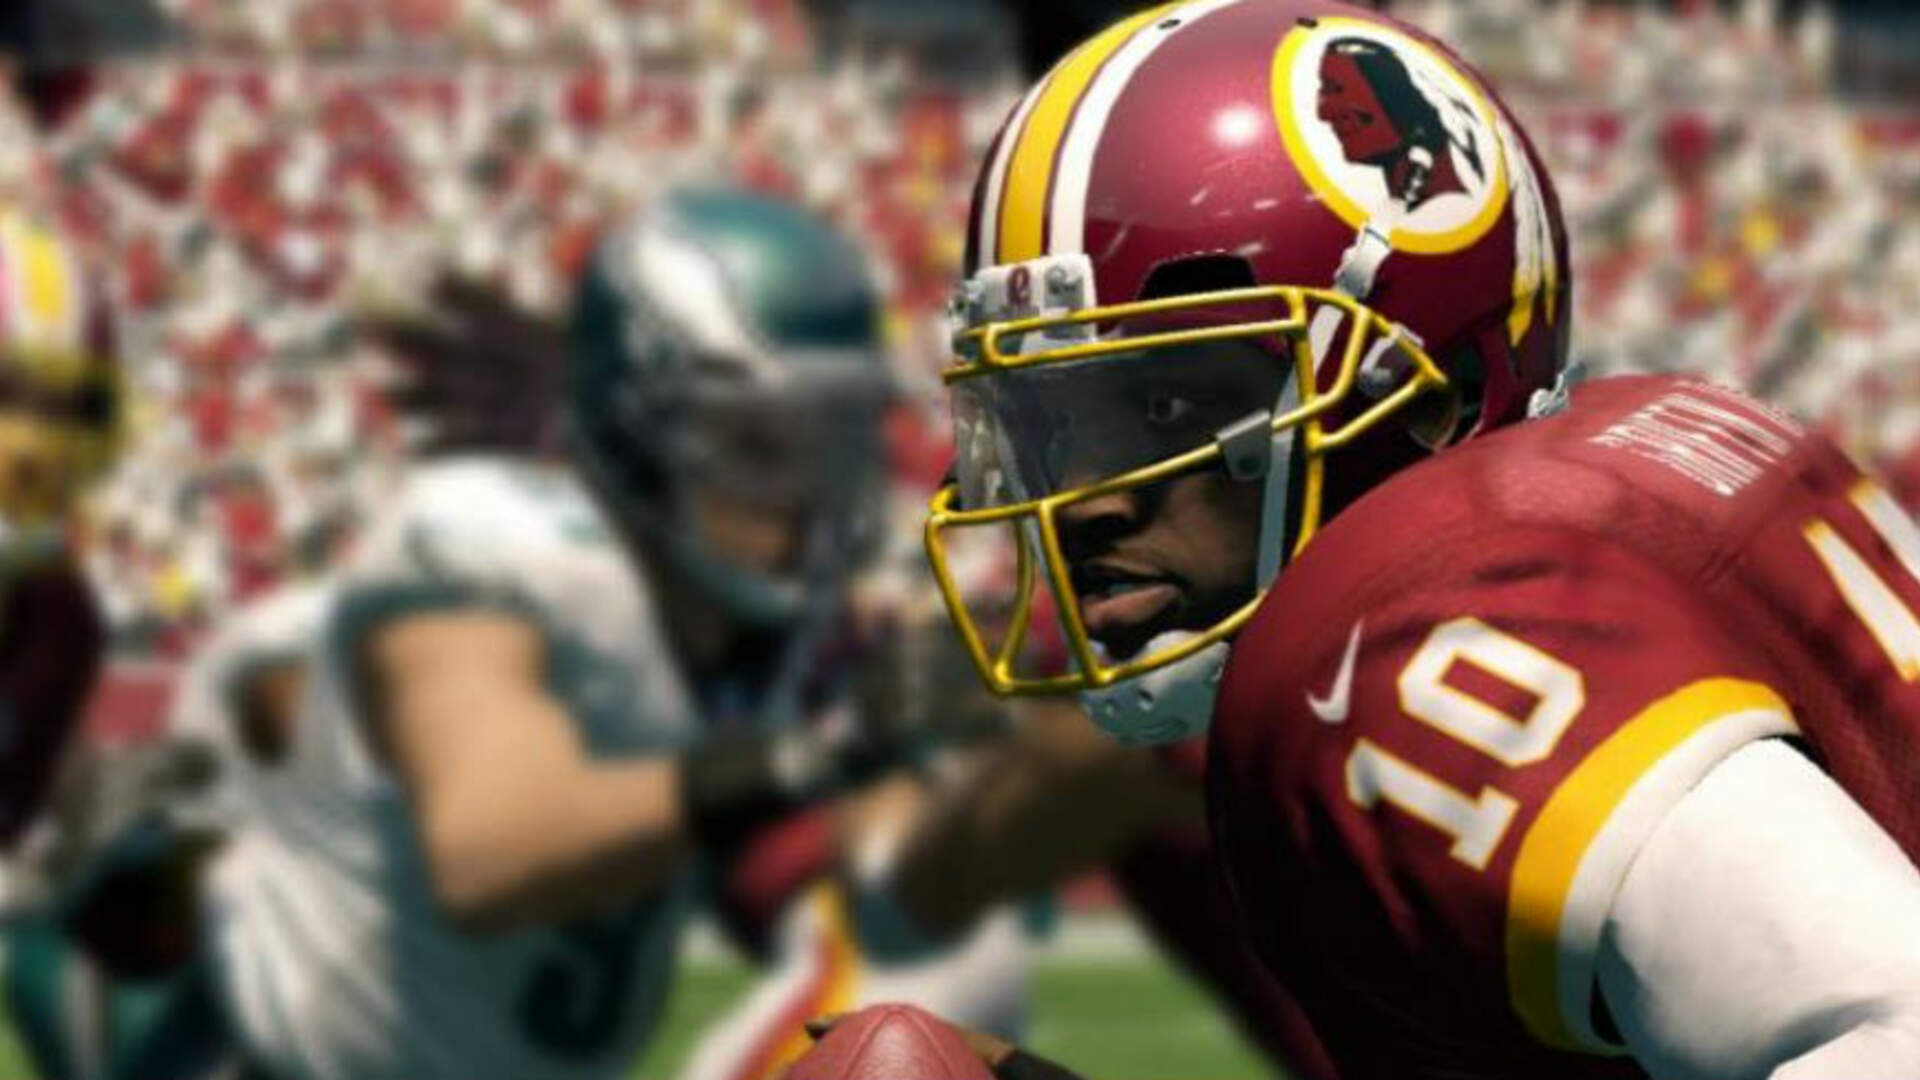 Madden NFL 25 PS4 Review: Next-Gen Is In the Play, Not the Graphics